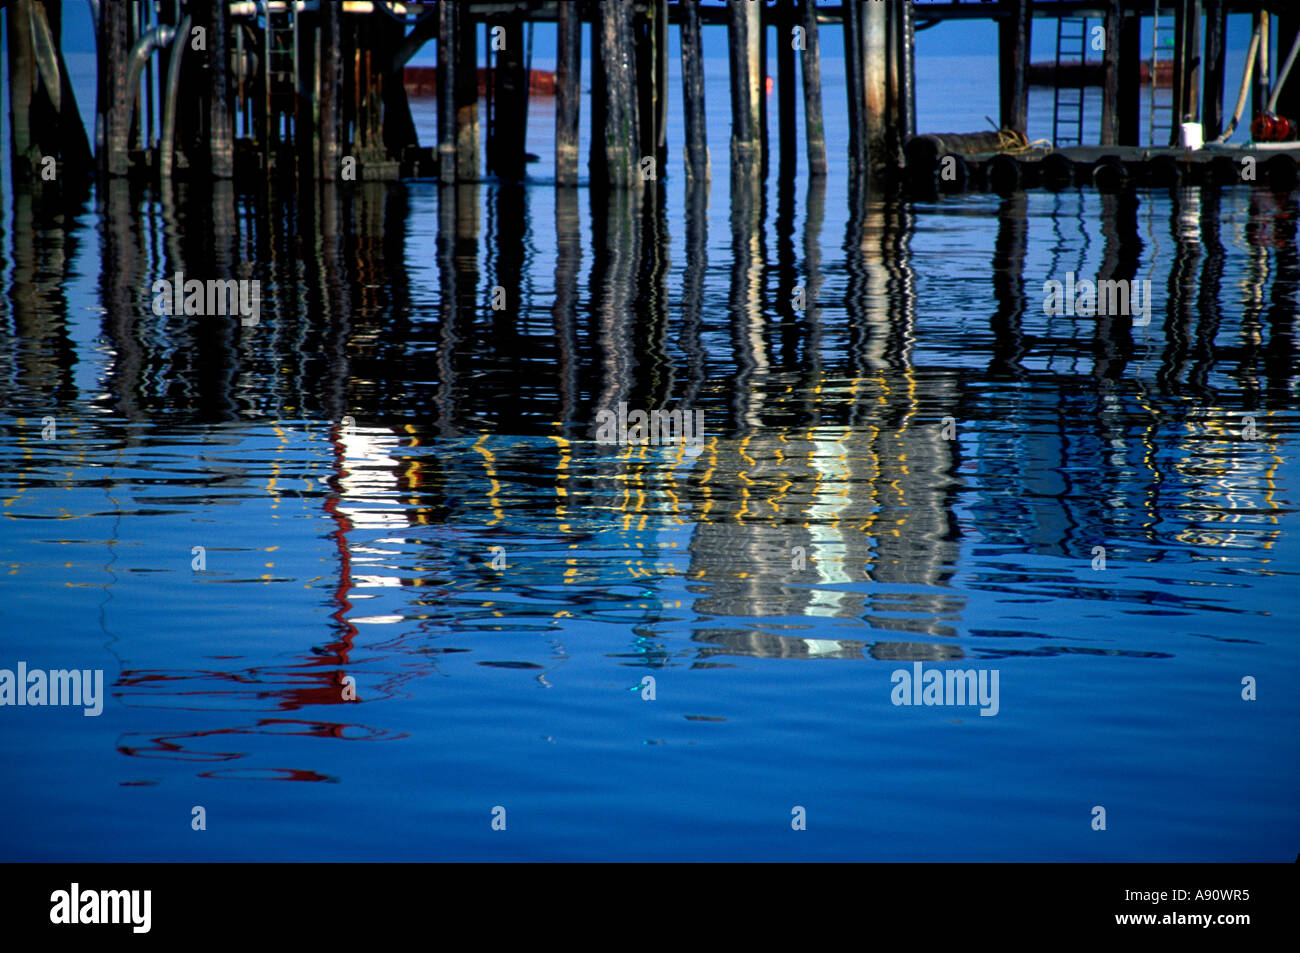 PA7-90  DOCK REFLECTION IN KAKE HARBOR - Stock Image